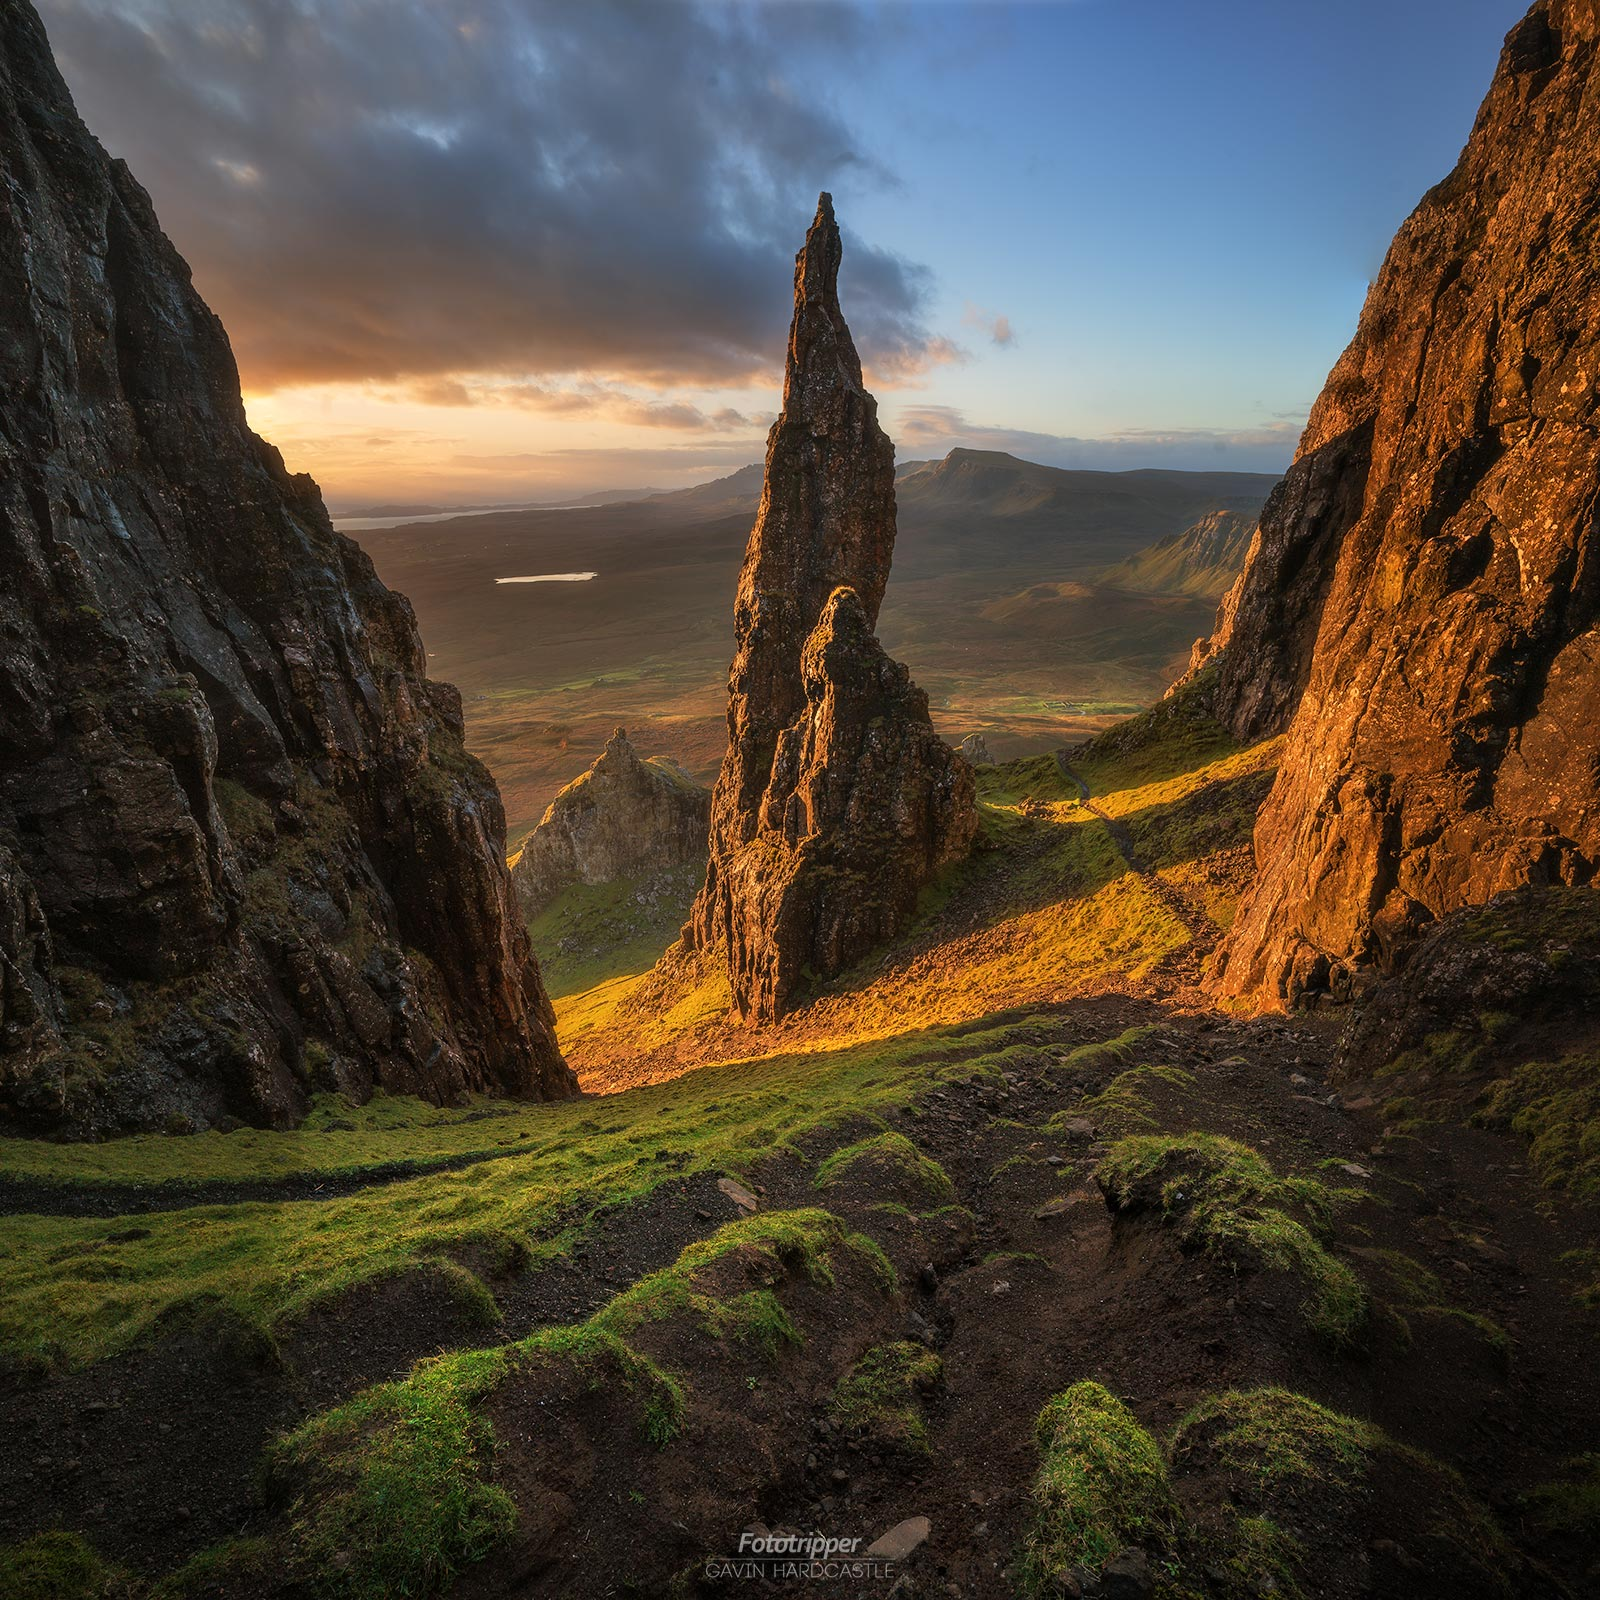 The Quiraing Needle - Scotland Photography Workshop